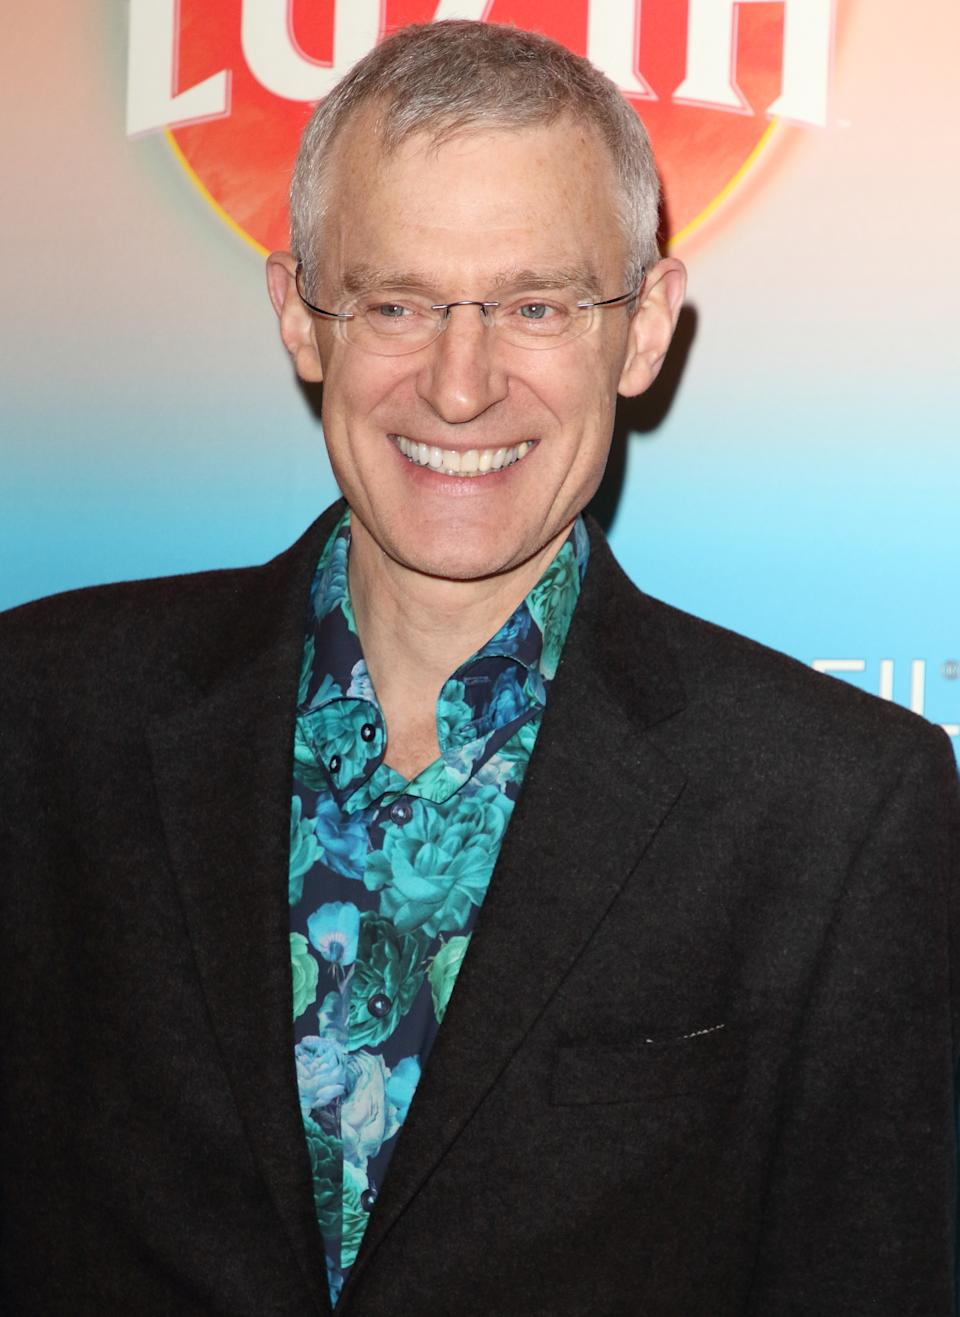 Jeremy Vine at the Cirque du Soleil Luzia Press Night at the Royal Albert Hall, Kensington. (Photo by Keith Mayhew / SOPA Images/Sipa USA)